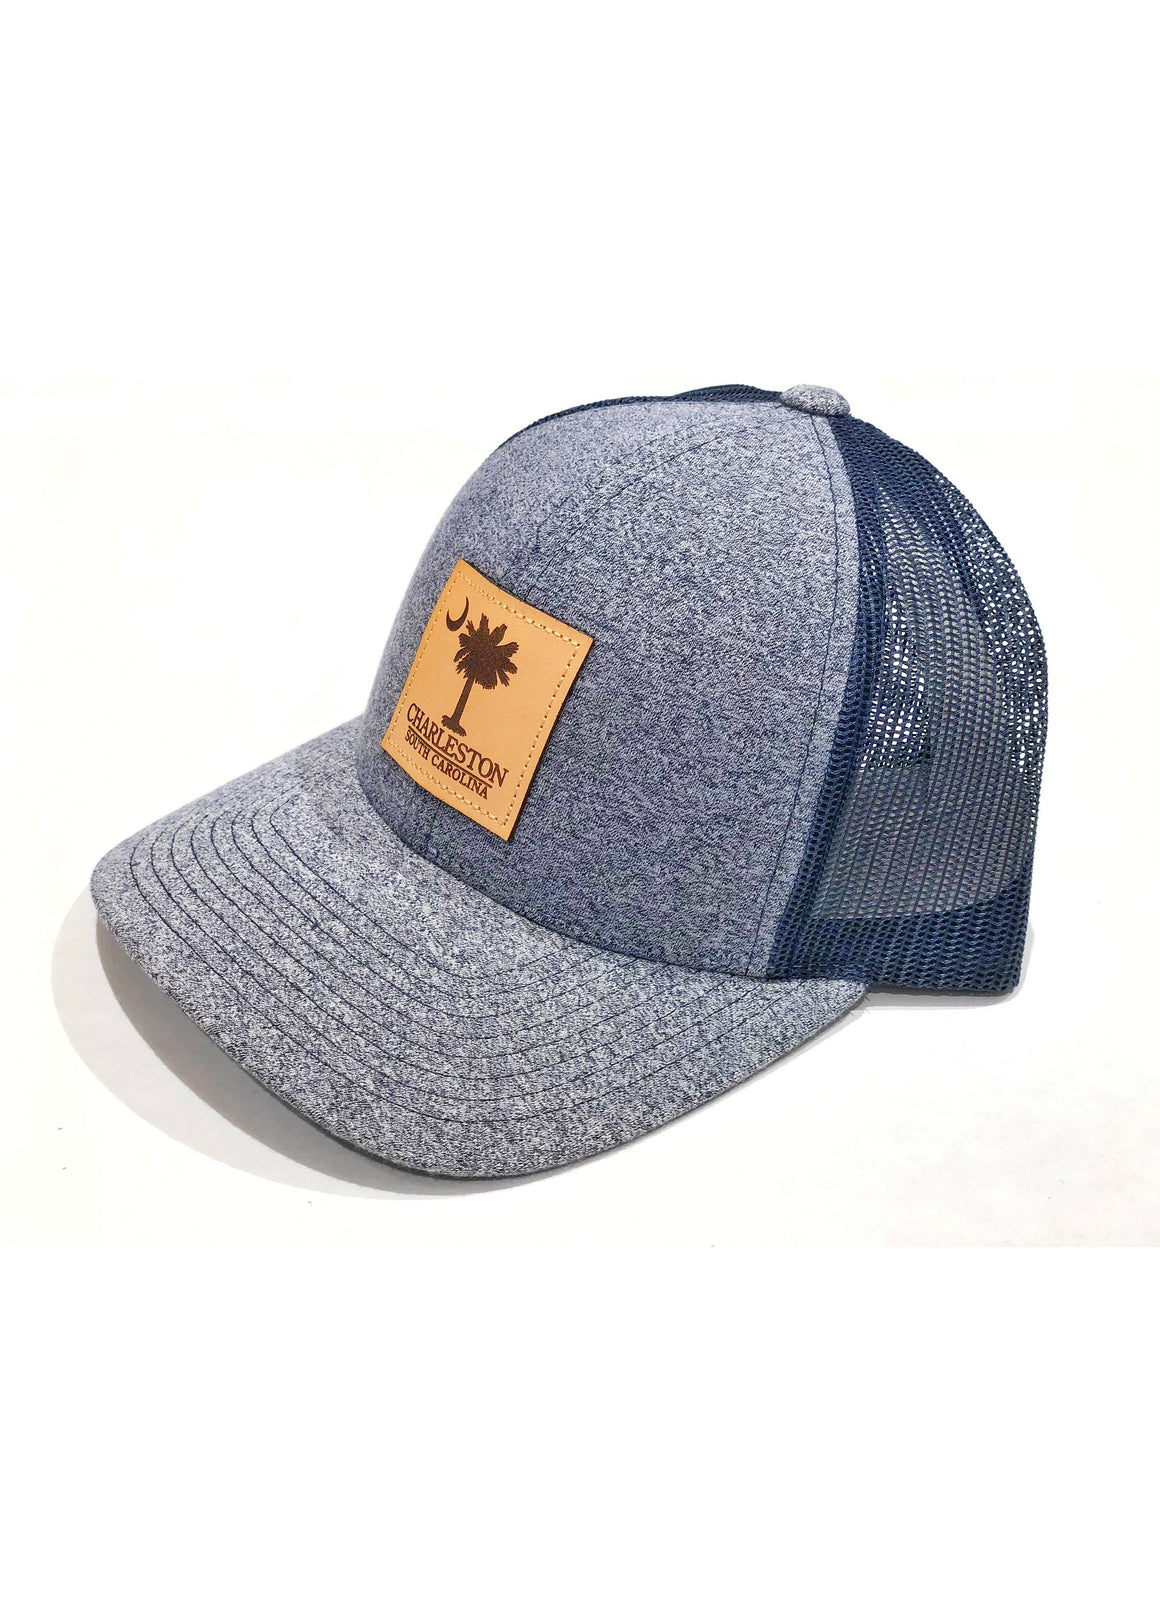 Trucker Hat with Palmetto and Crescent Moon Leather Patch | Navy Heather / Navy